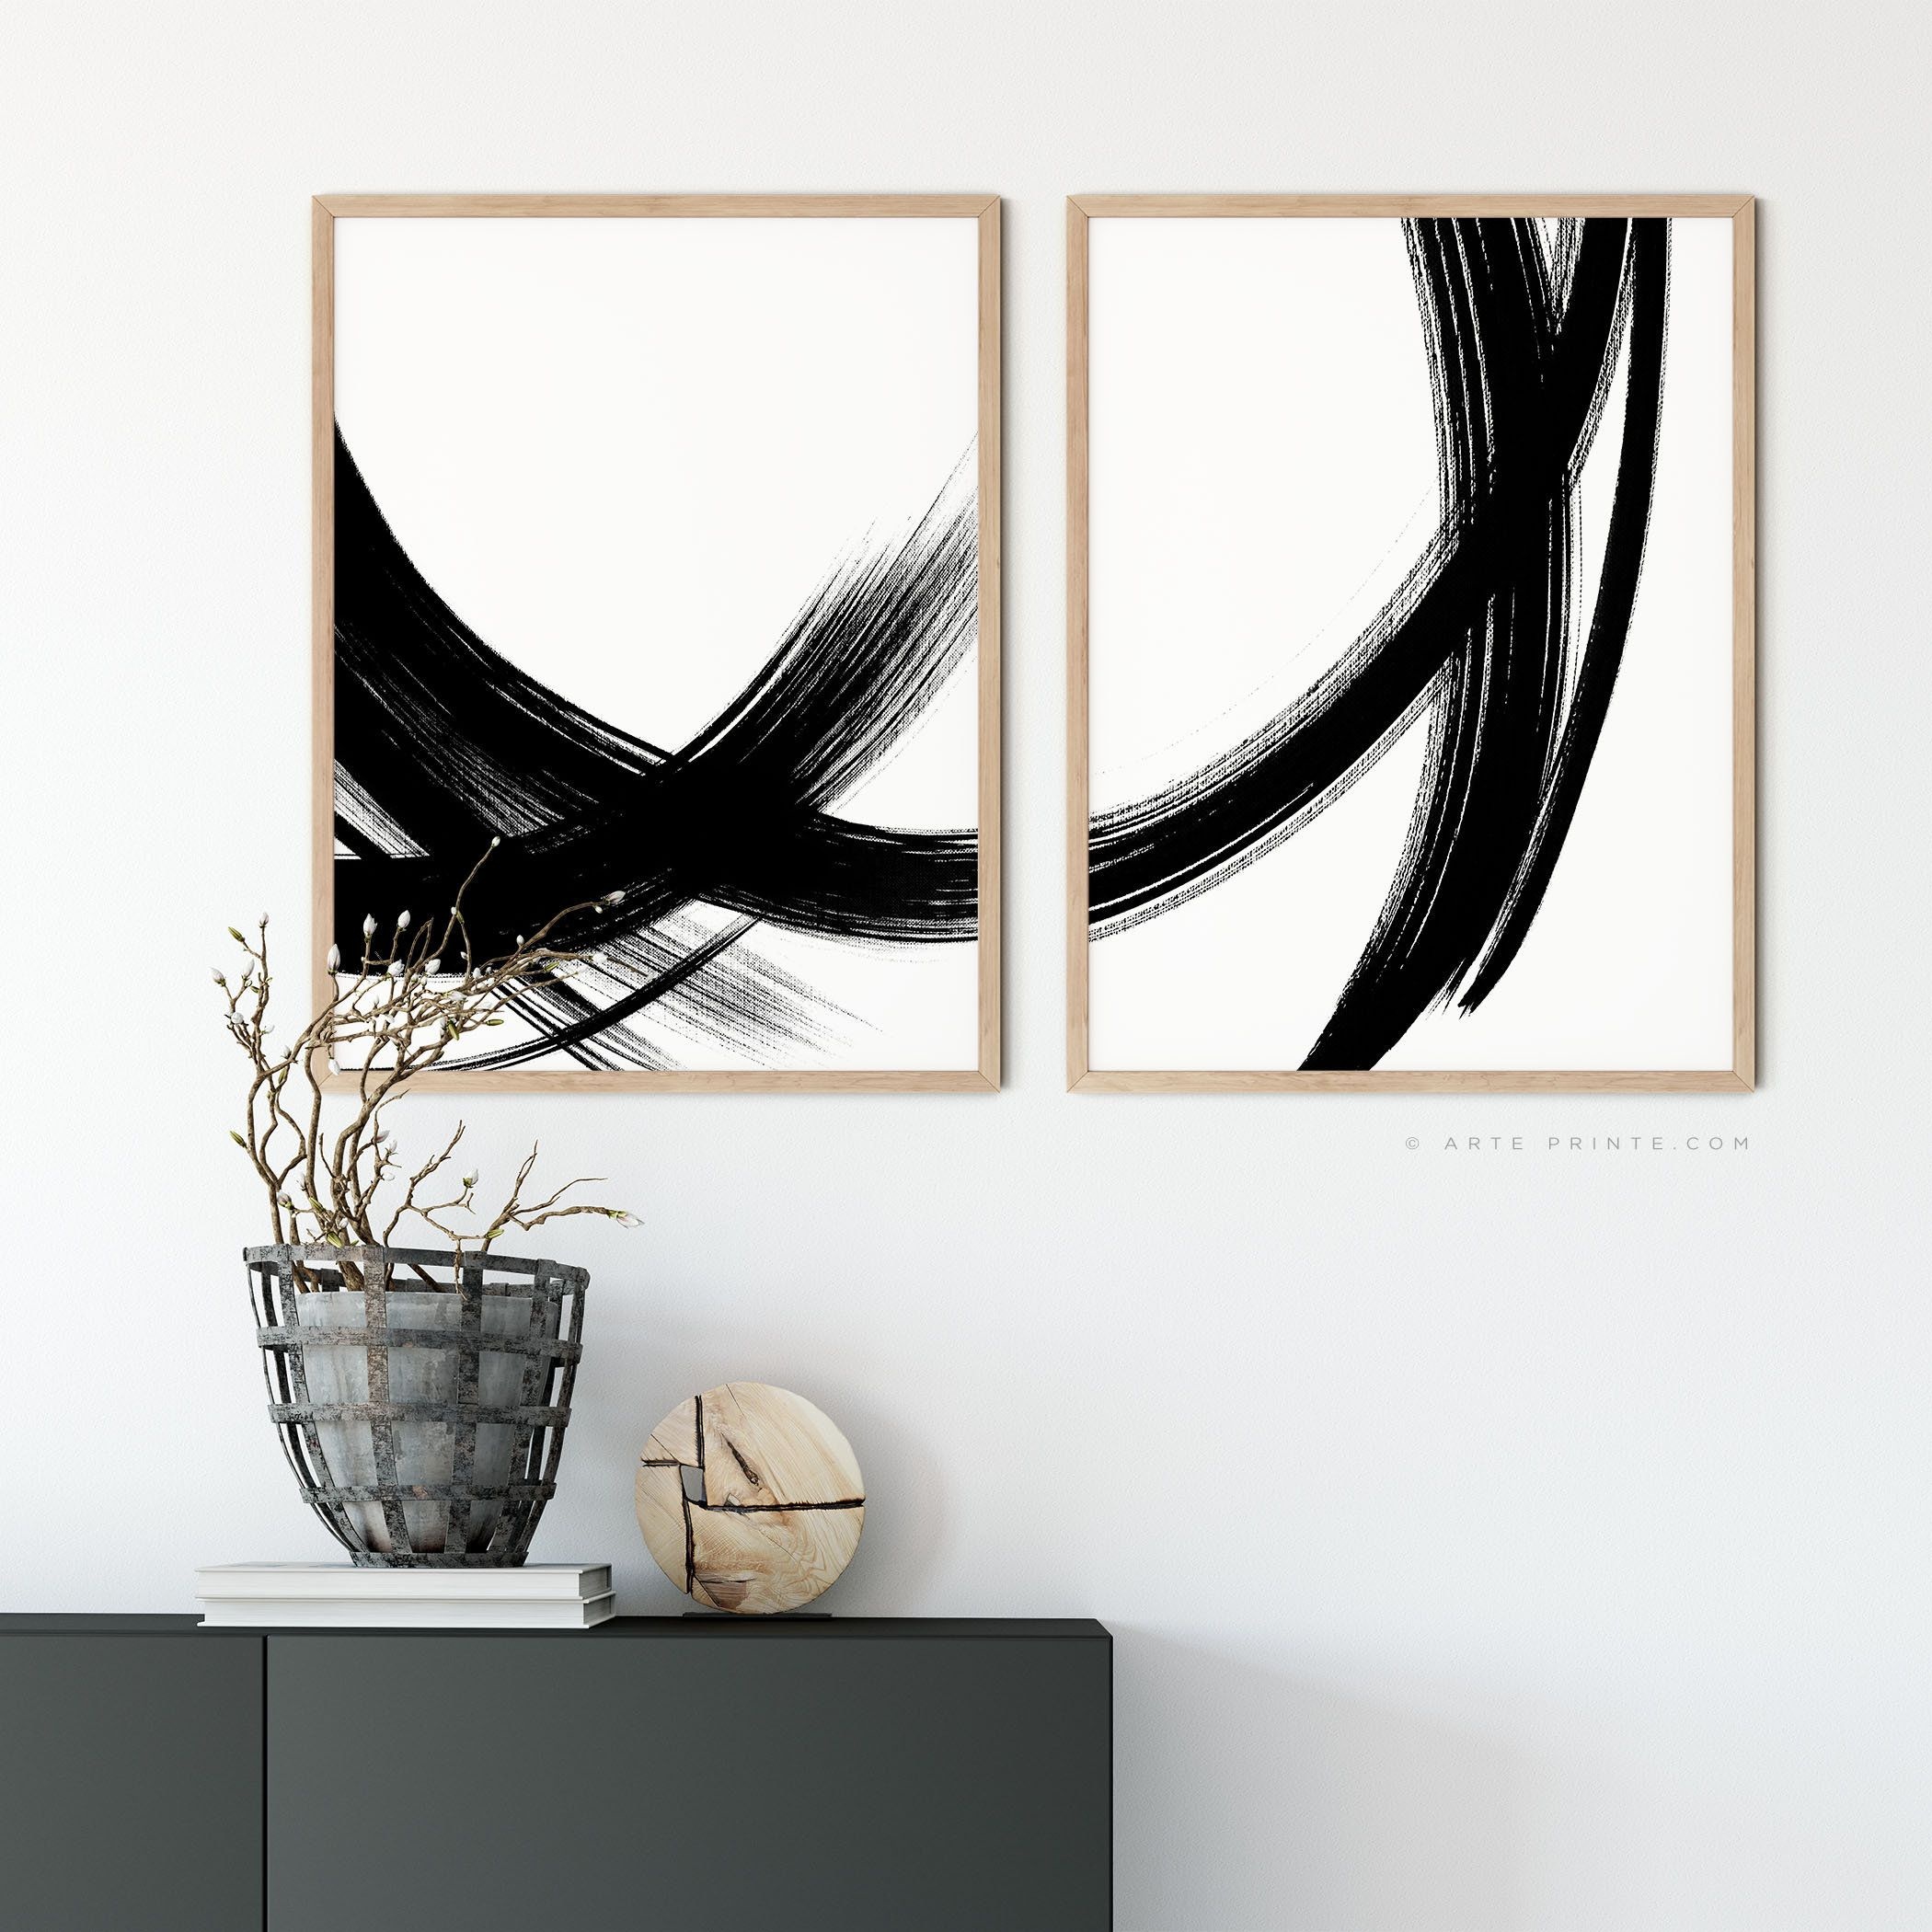 Set Of 2 Minimalist Abstract Brush Strokes Wall Prints Black And White Painting Large Contemporary Modern Home Decor Wall Art Minimal Poster